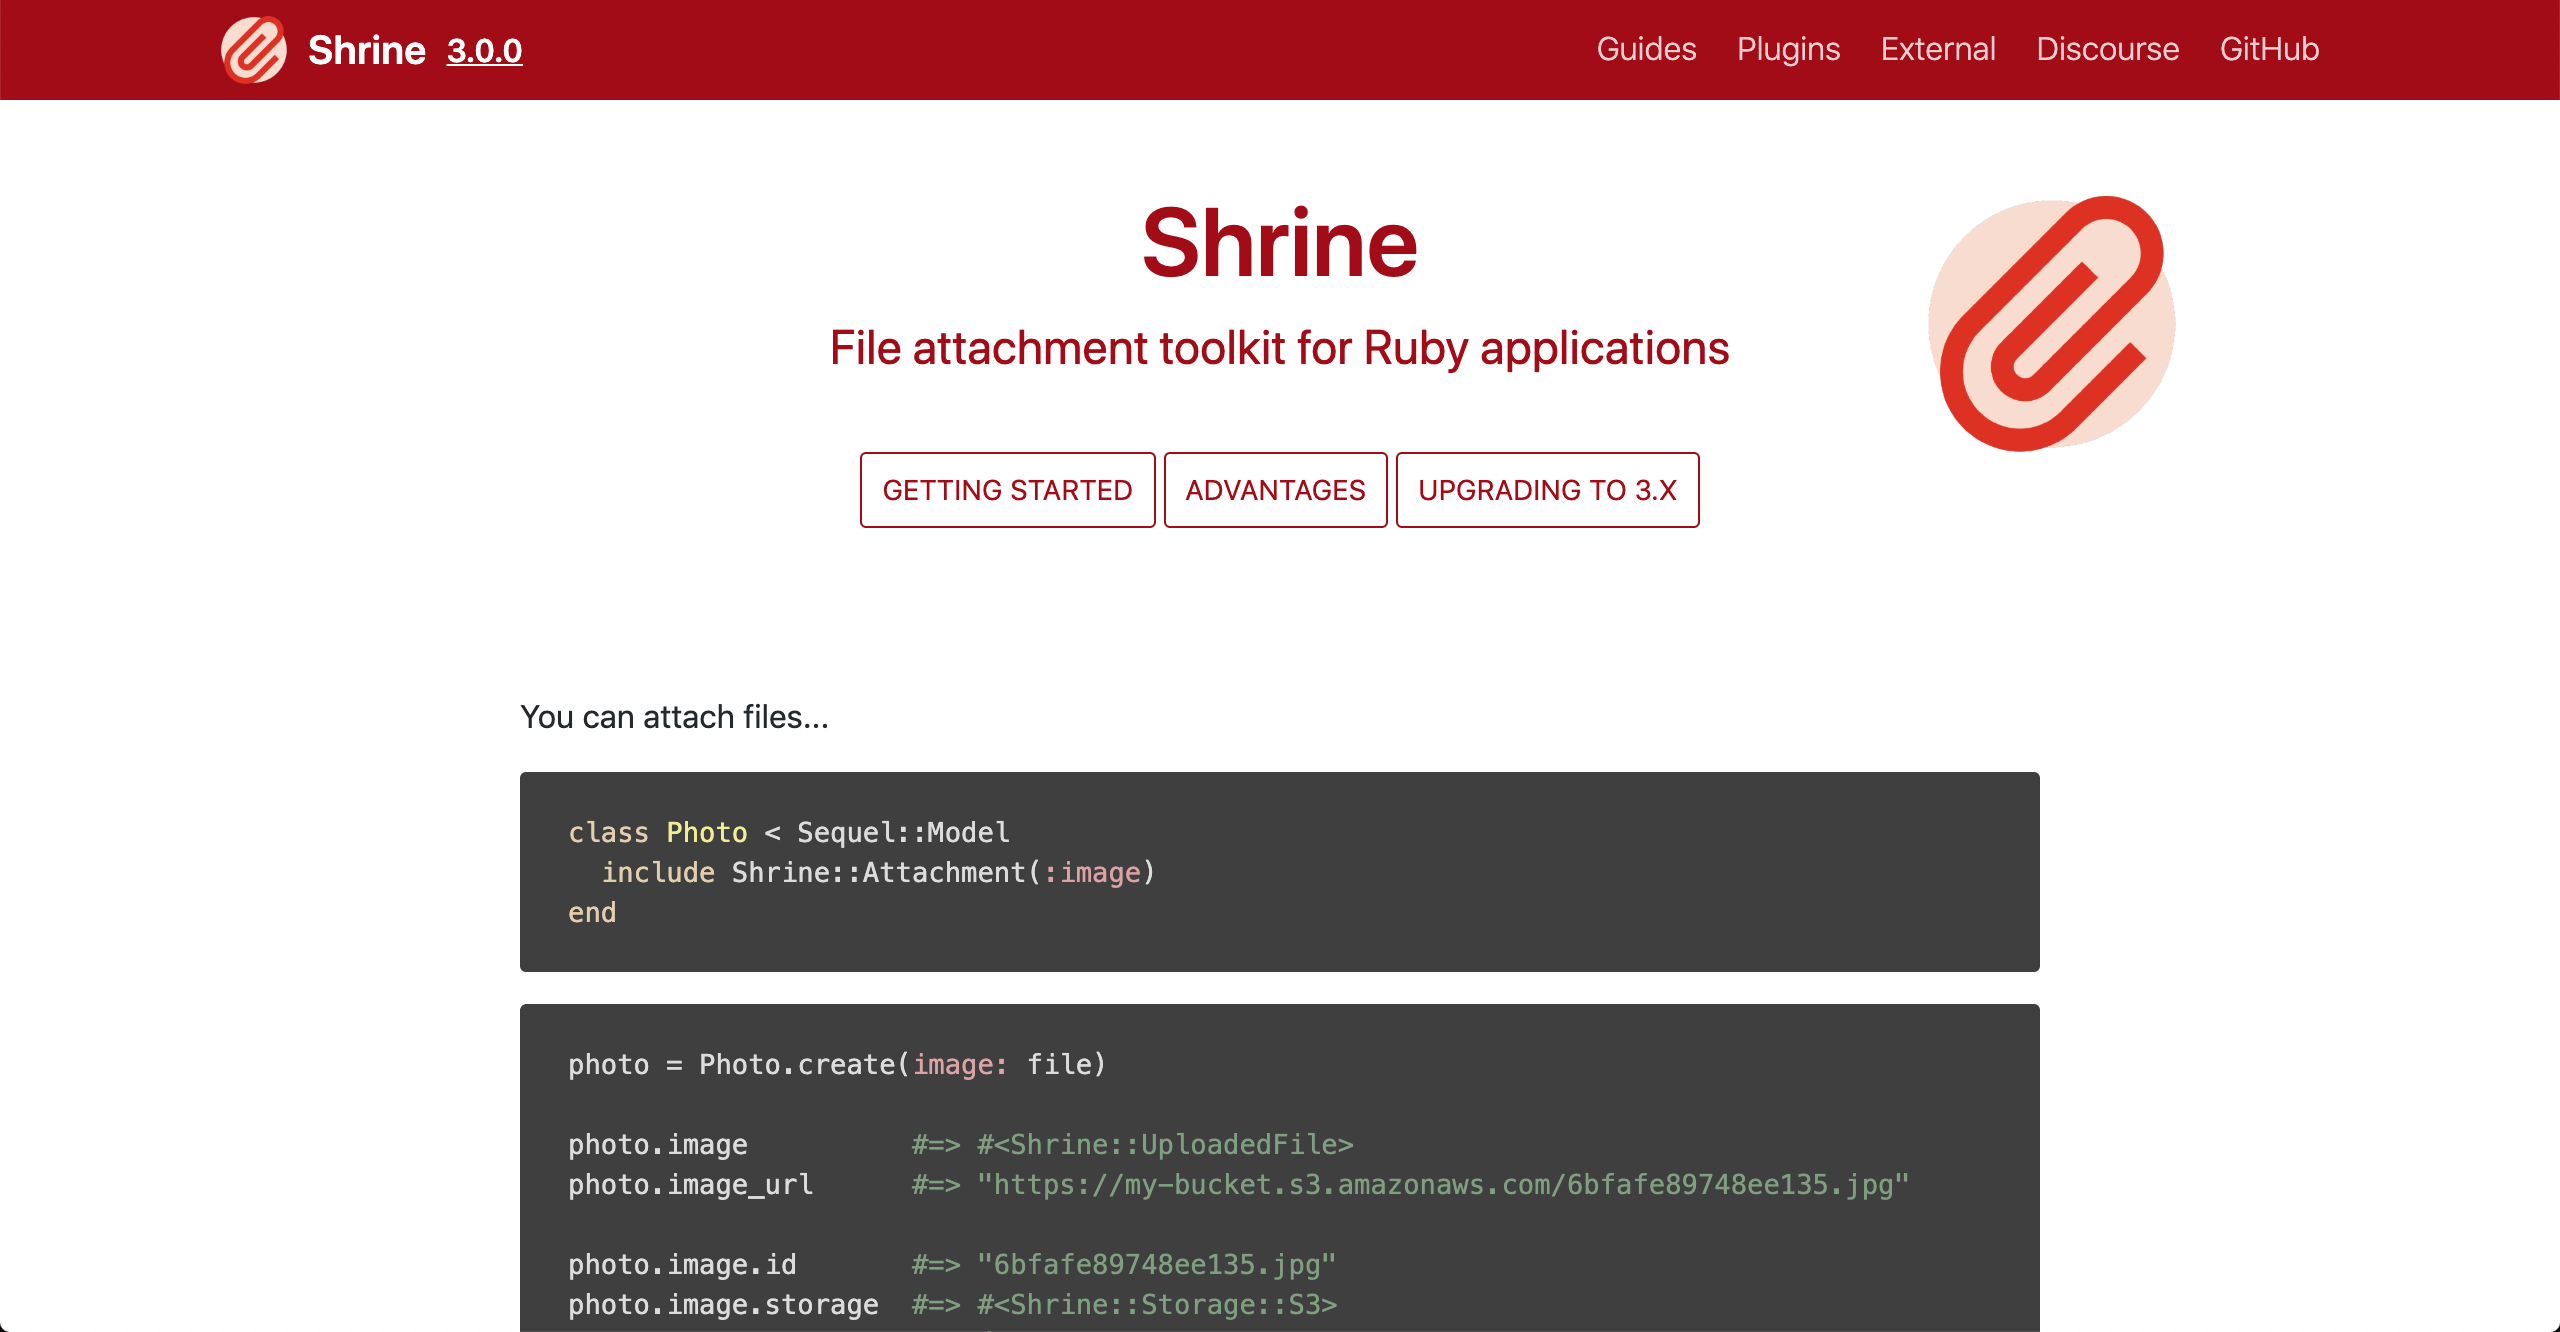 Shrine new website